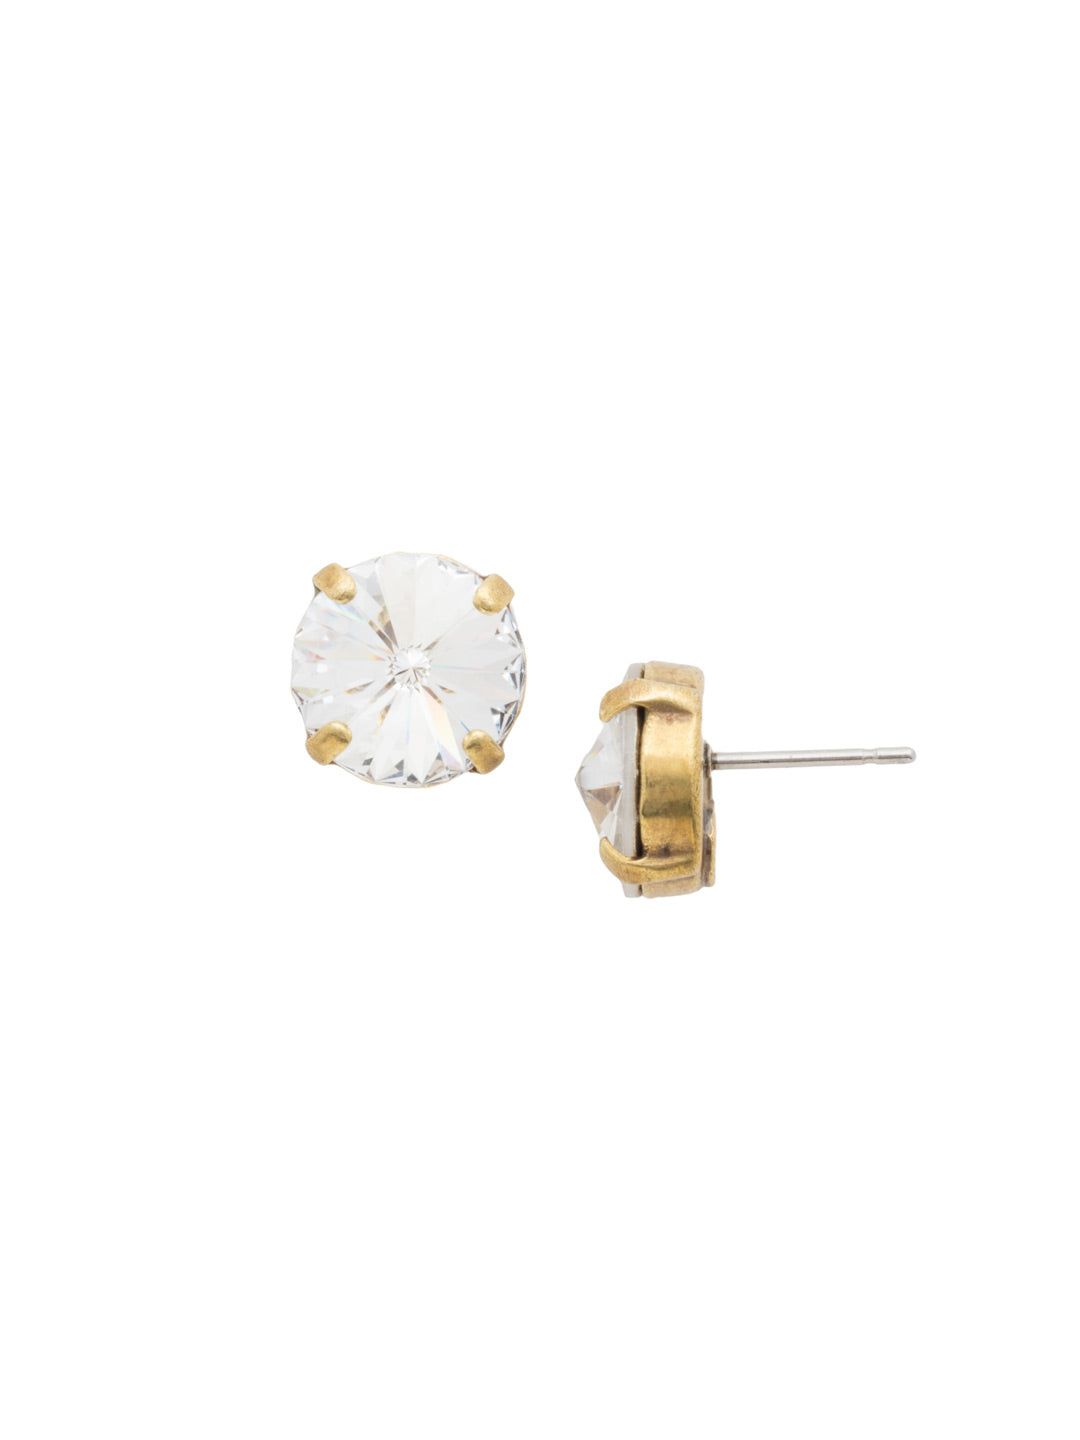 Radiant Rivoli Stud Earrings - EDE71AGCRY